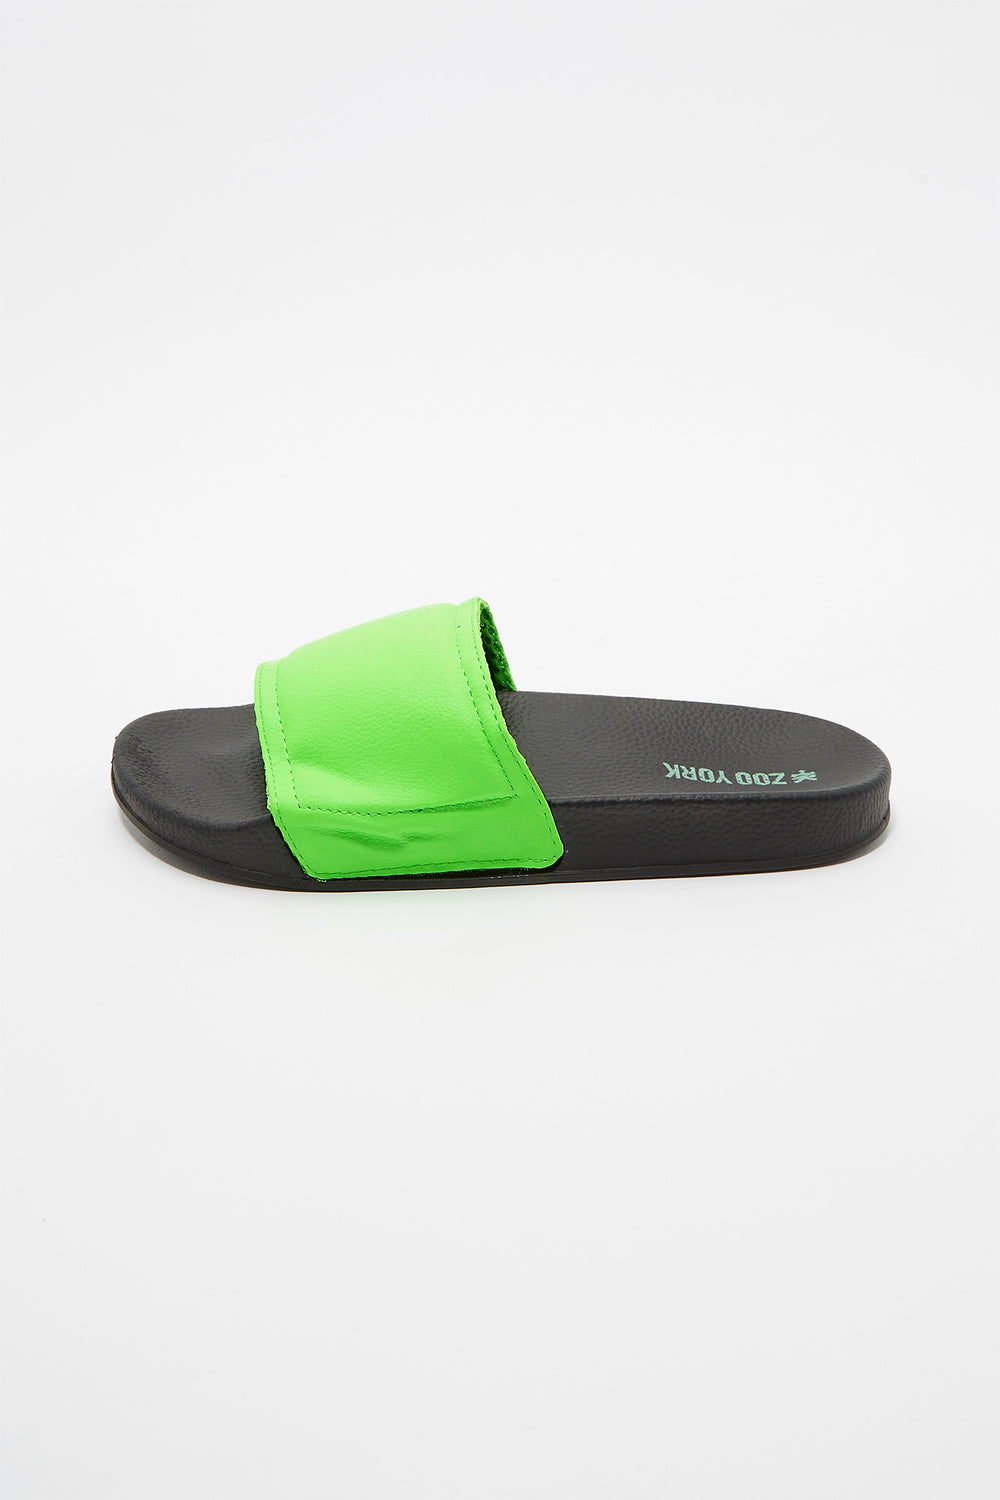 Zoo York Boys Slider Sandals Neon Green